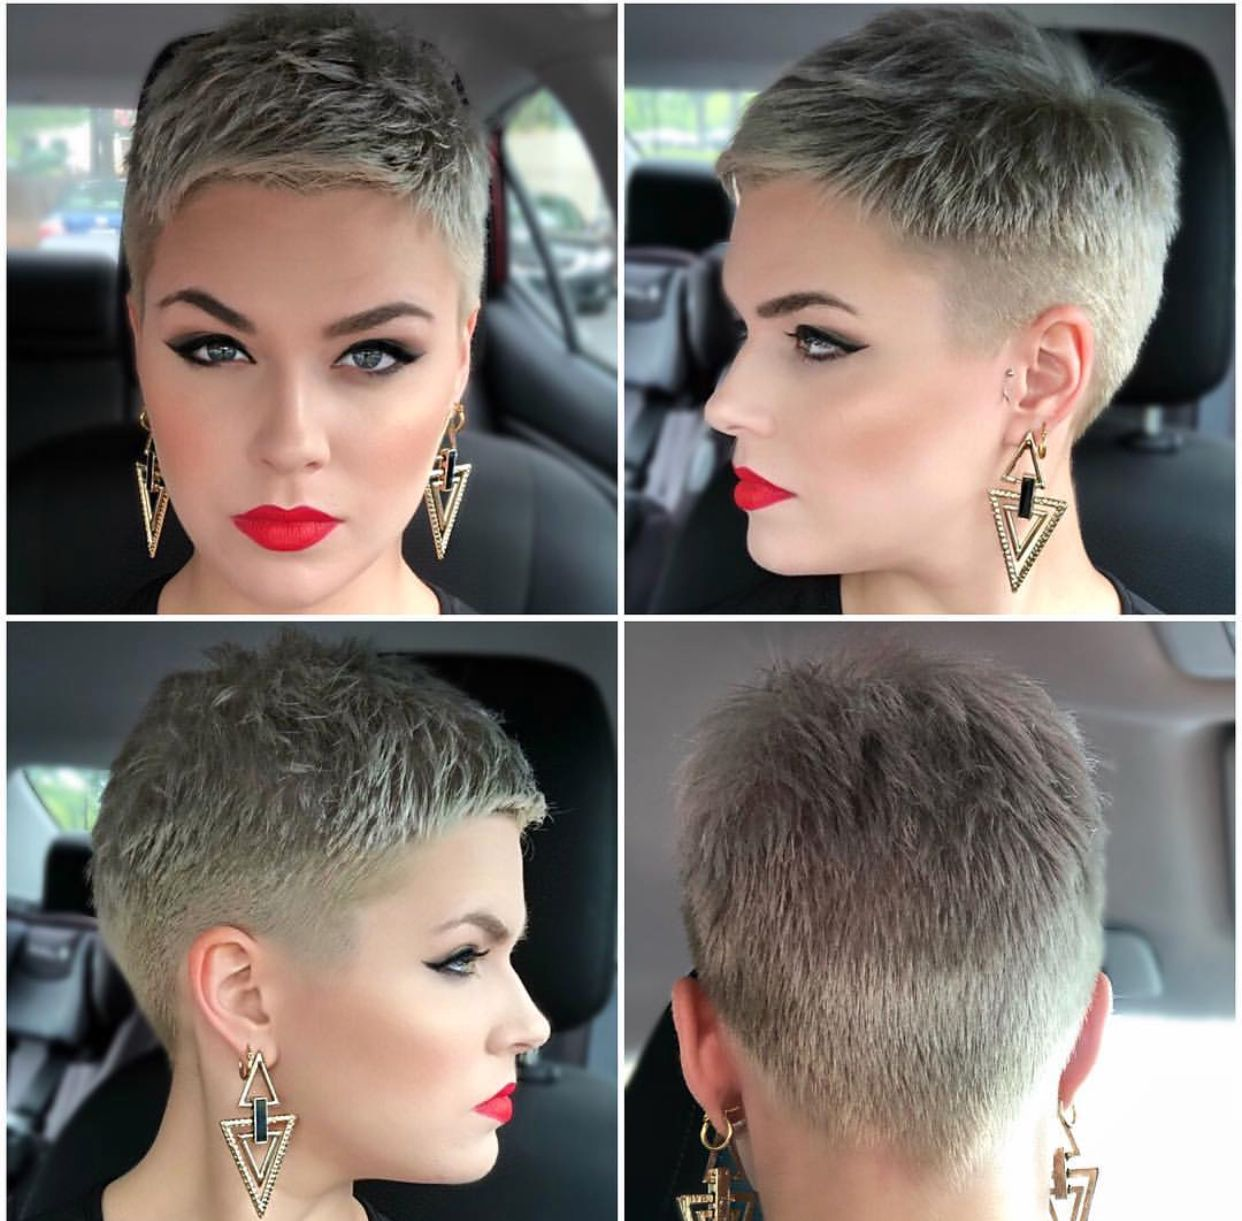 pin by rebecca fowler on chemo | short hair styles, hair